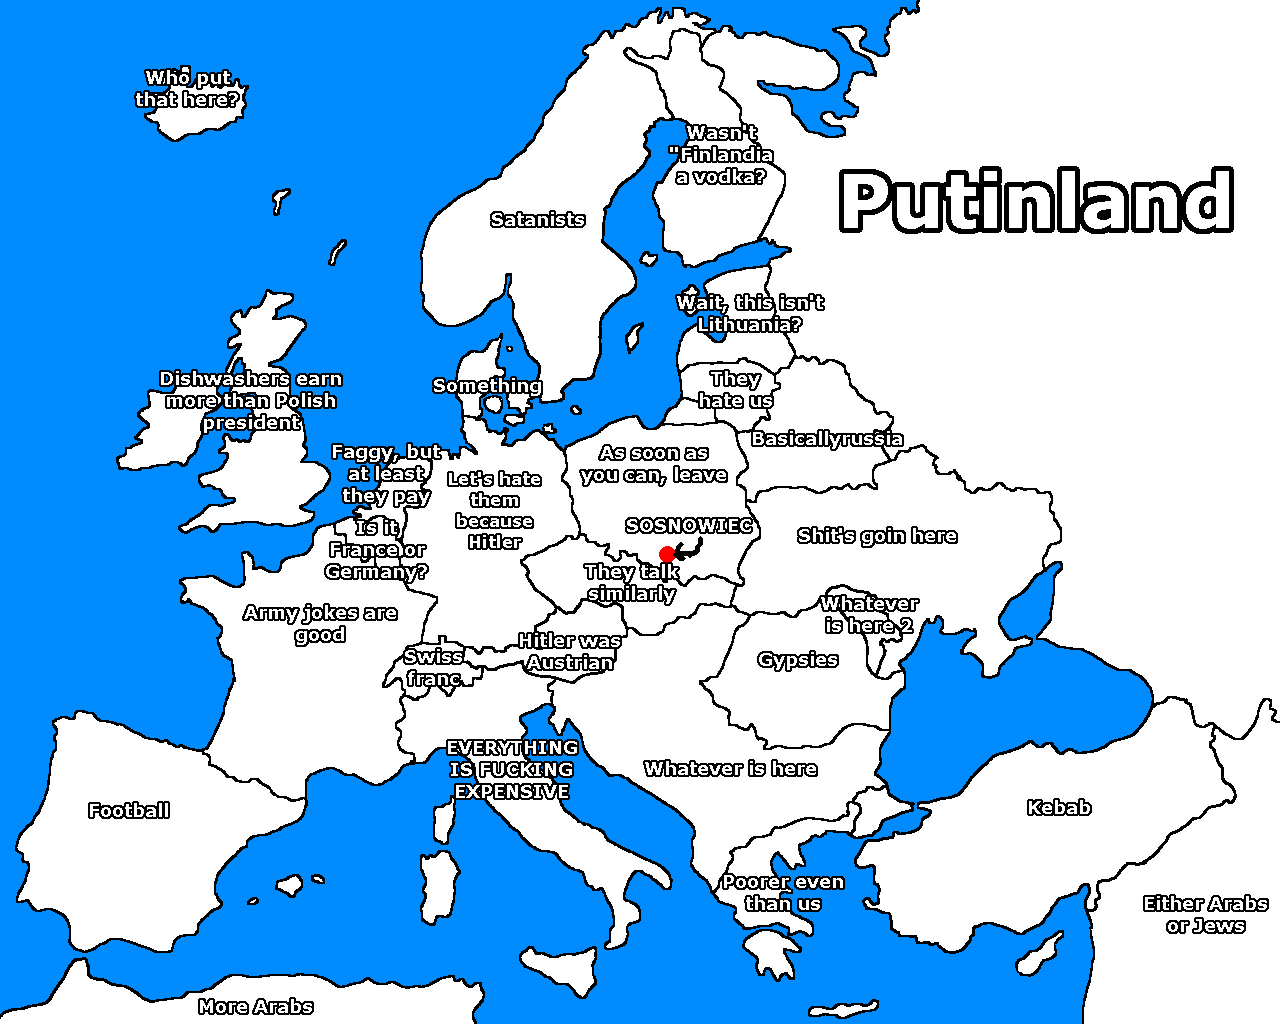 Europe according to the Polish | Nationality Stereotypes ...